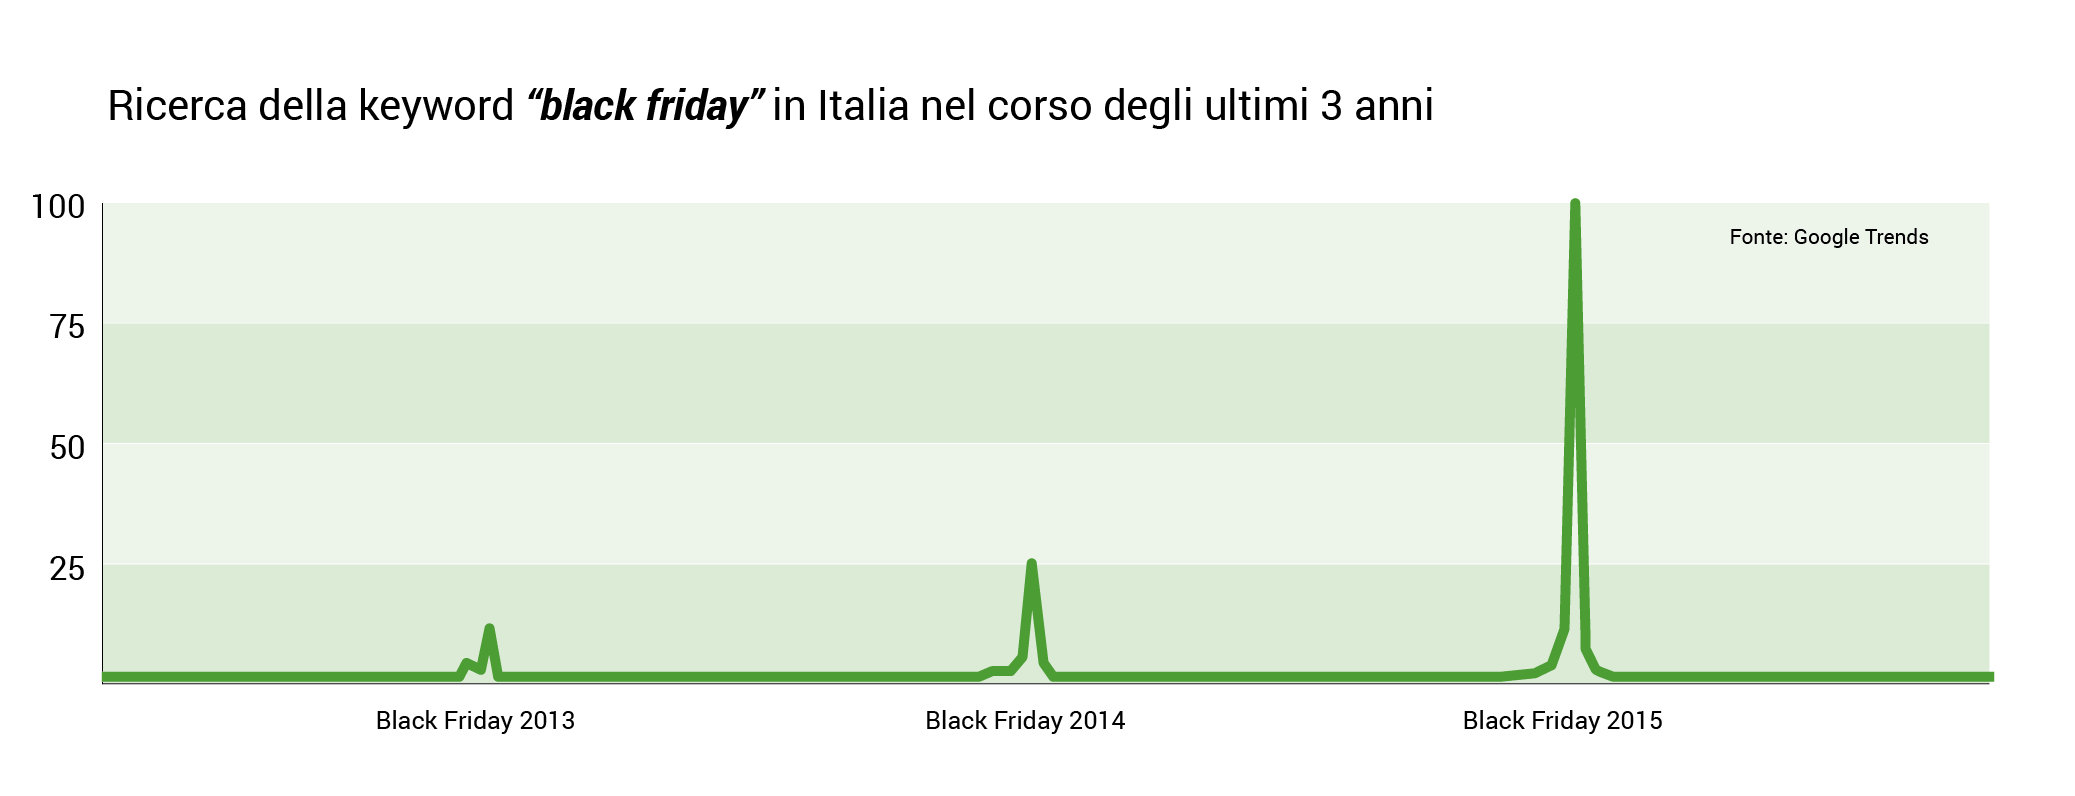 tikato-blackfriday-grafico-001